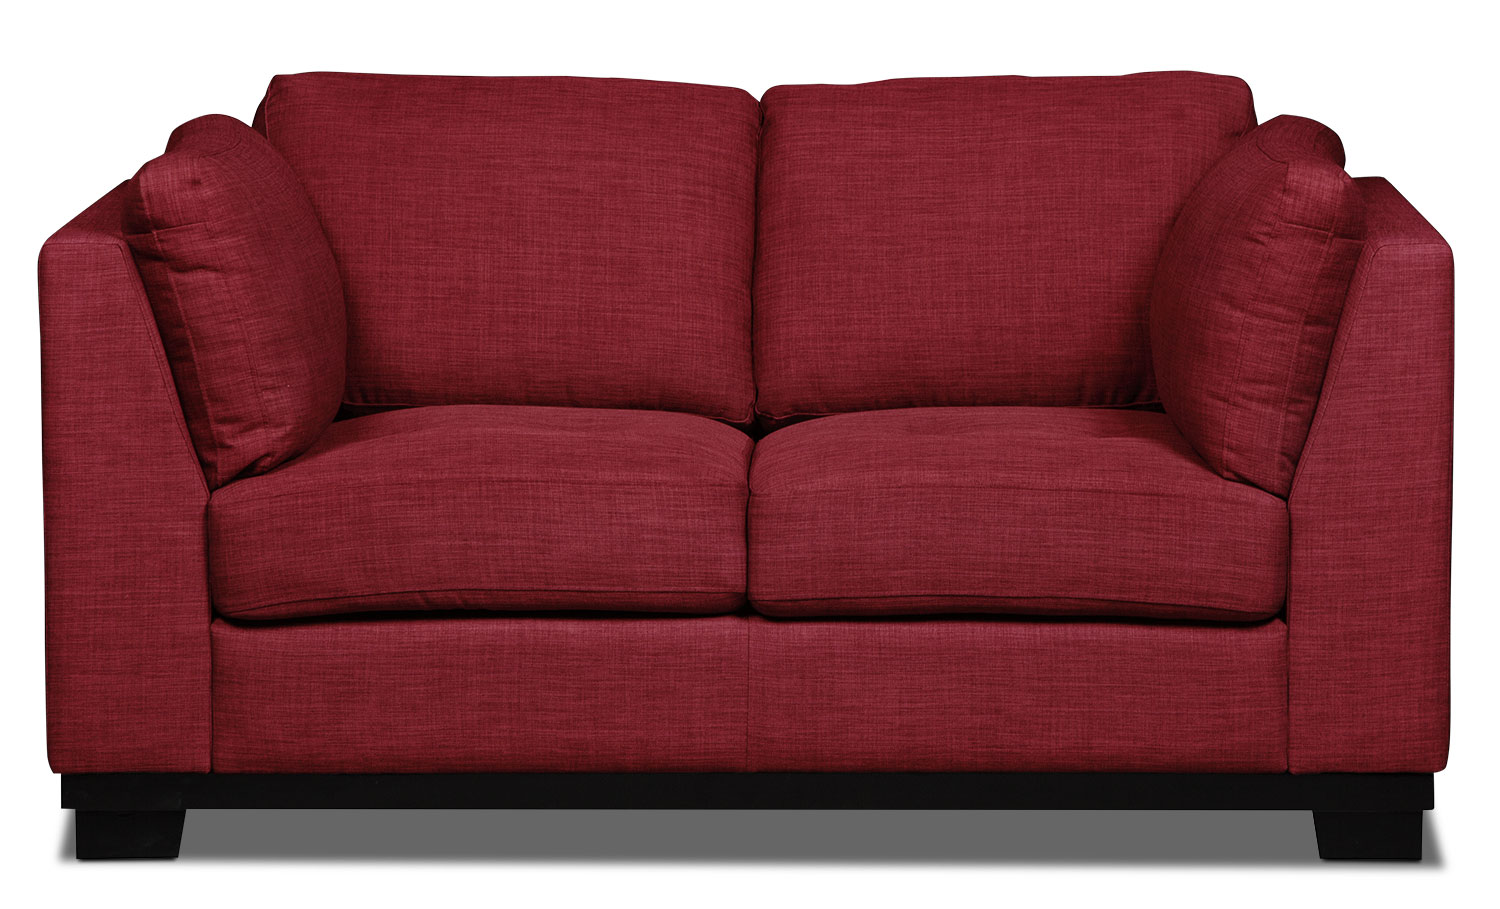 Oakdale Linen-Look Fabric Loveseat – Cherry